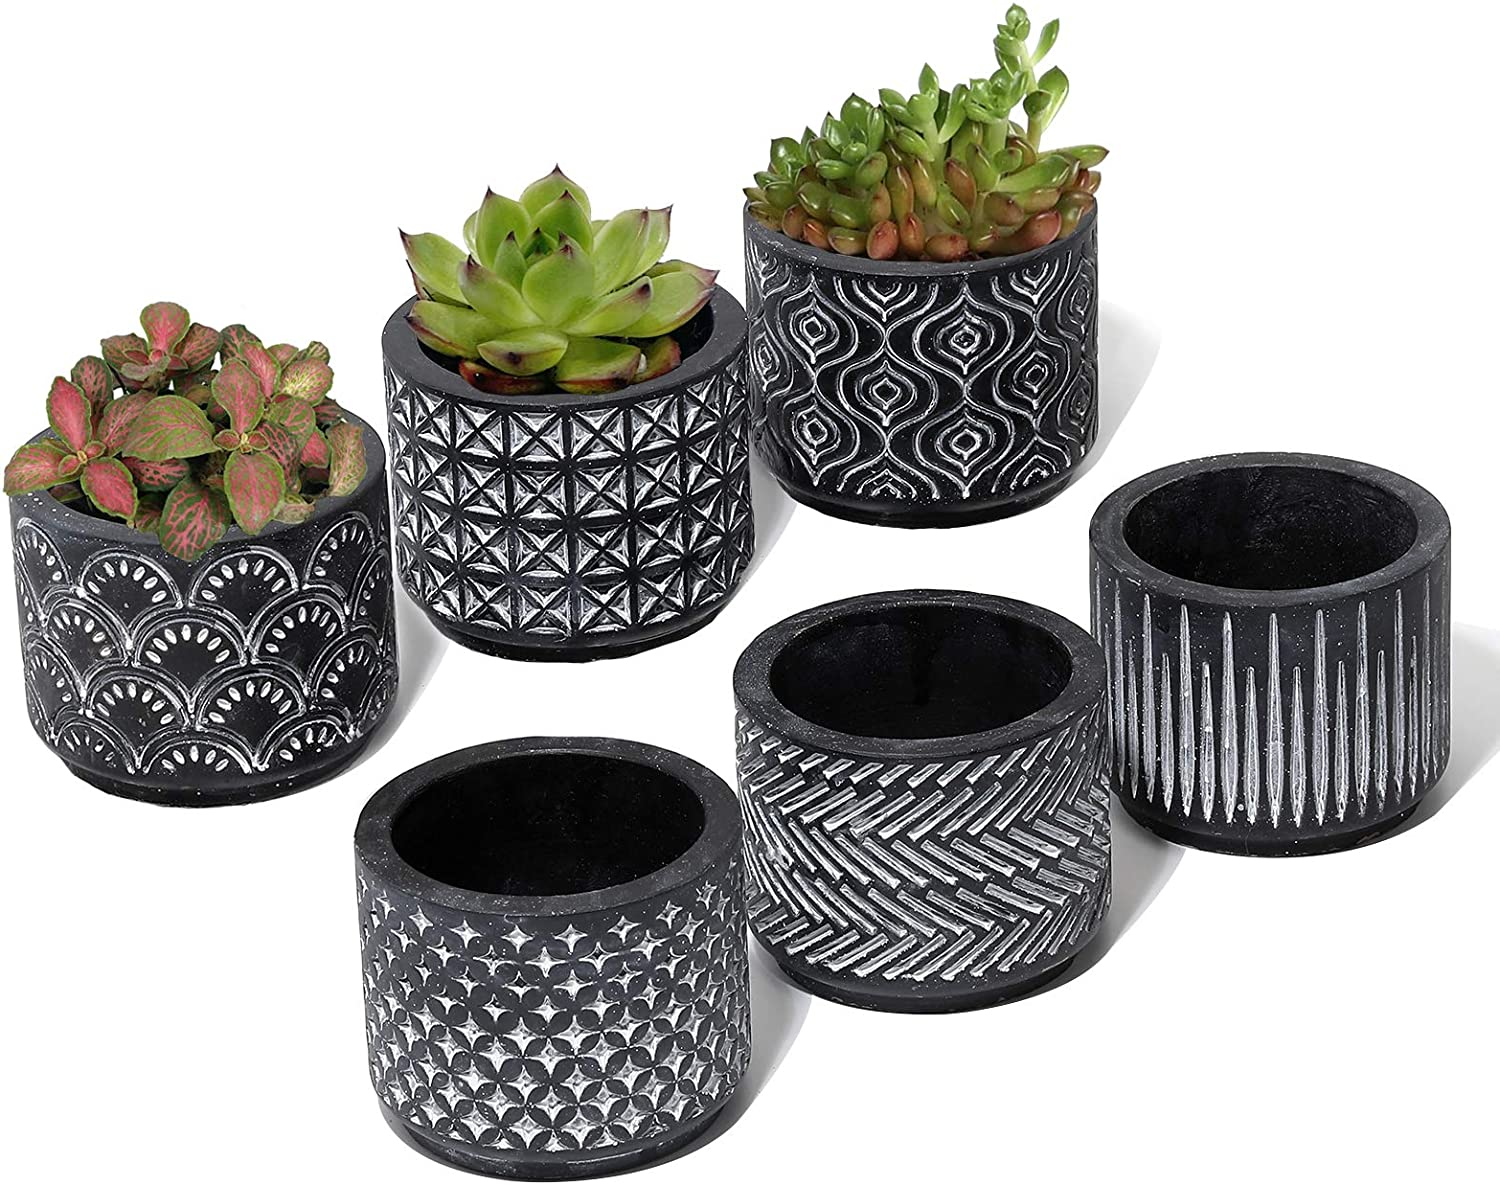 2.7 Inch Cement Succulent Plant Pots - Set of 6 Mini Cactus Planter Indoor with Drainage Hole, Small Black Round Concrete Planter Garden Container for Herbs, Shelf, Windowswill. Plants Not Included